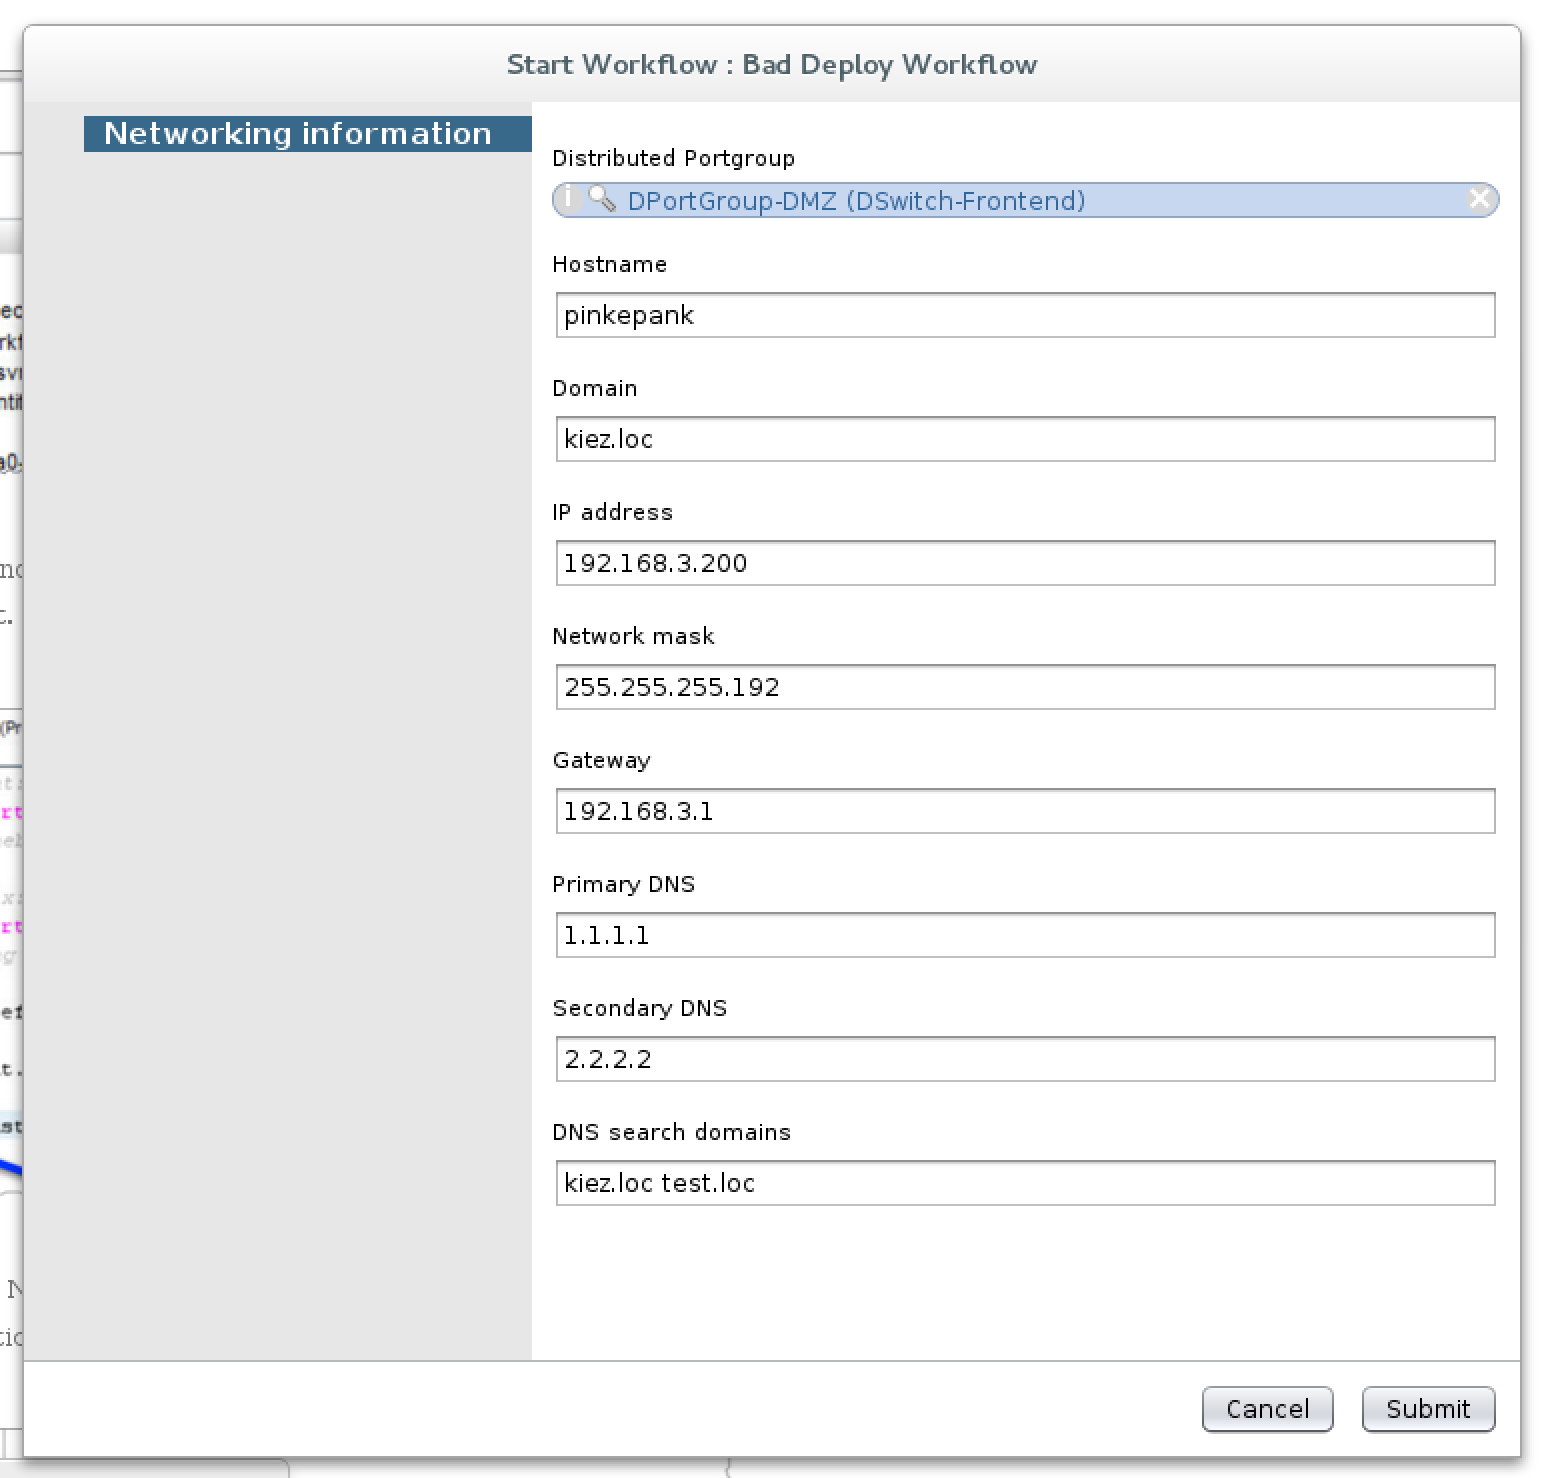 vRealize Orchestrator Configuration Elements in a nutshell | cstan io